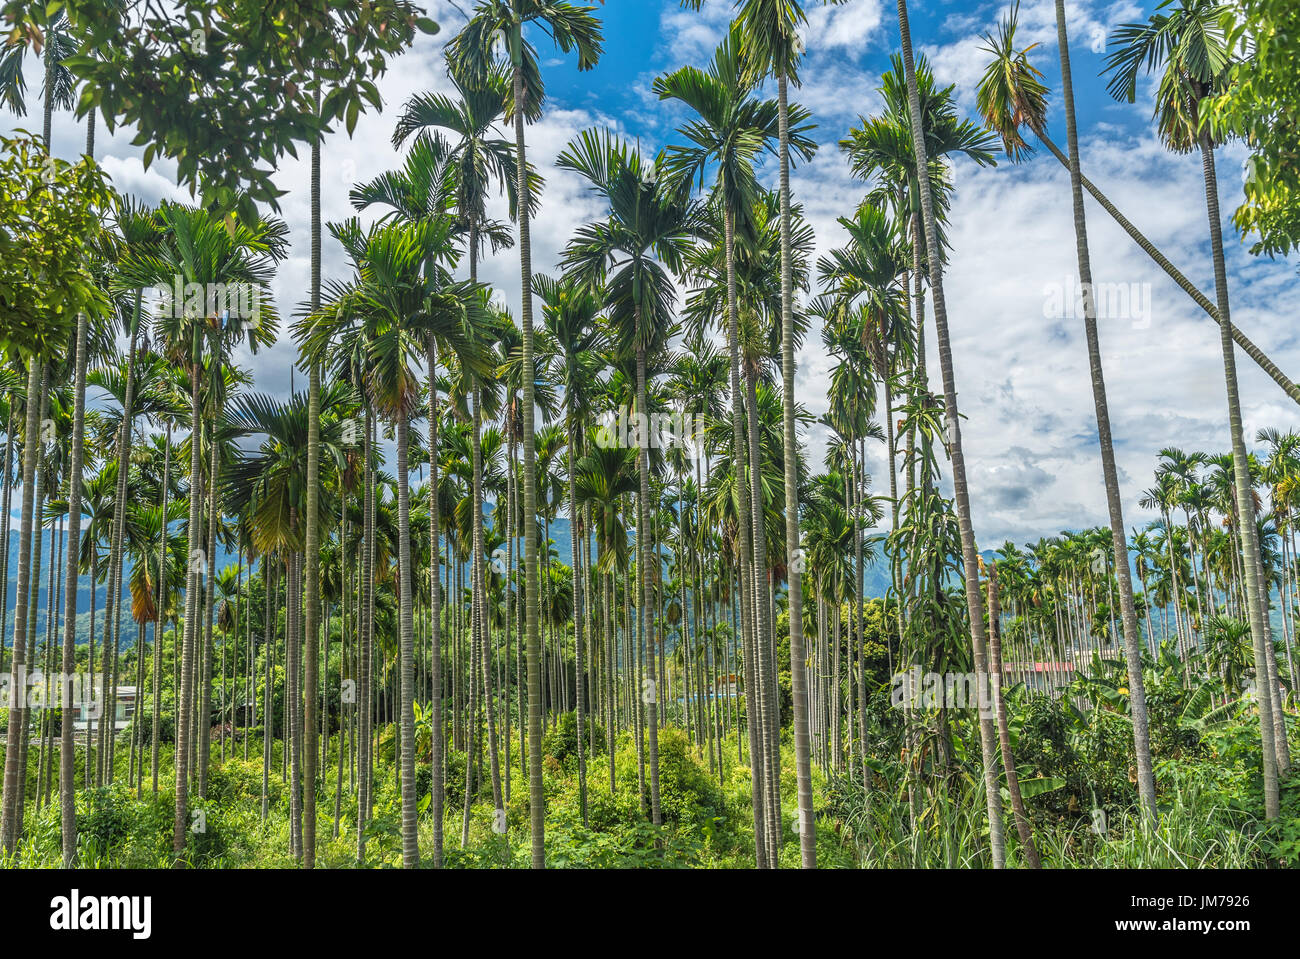 Palm Areca Areca Palm Plant Stock Photos And Areca Palm Plant Stock